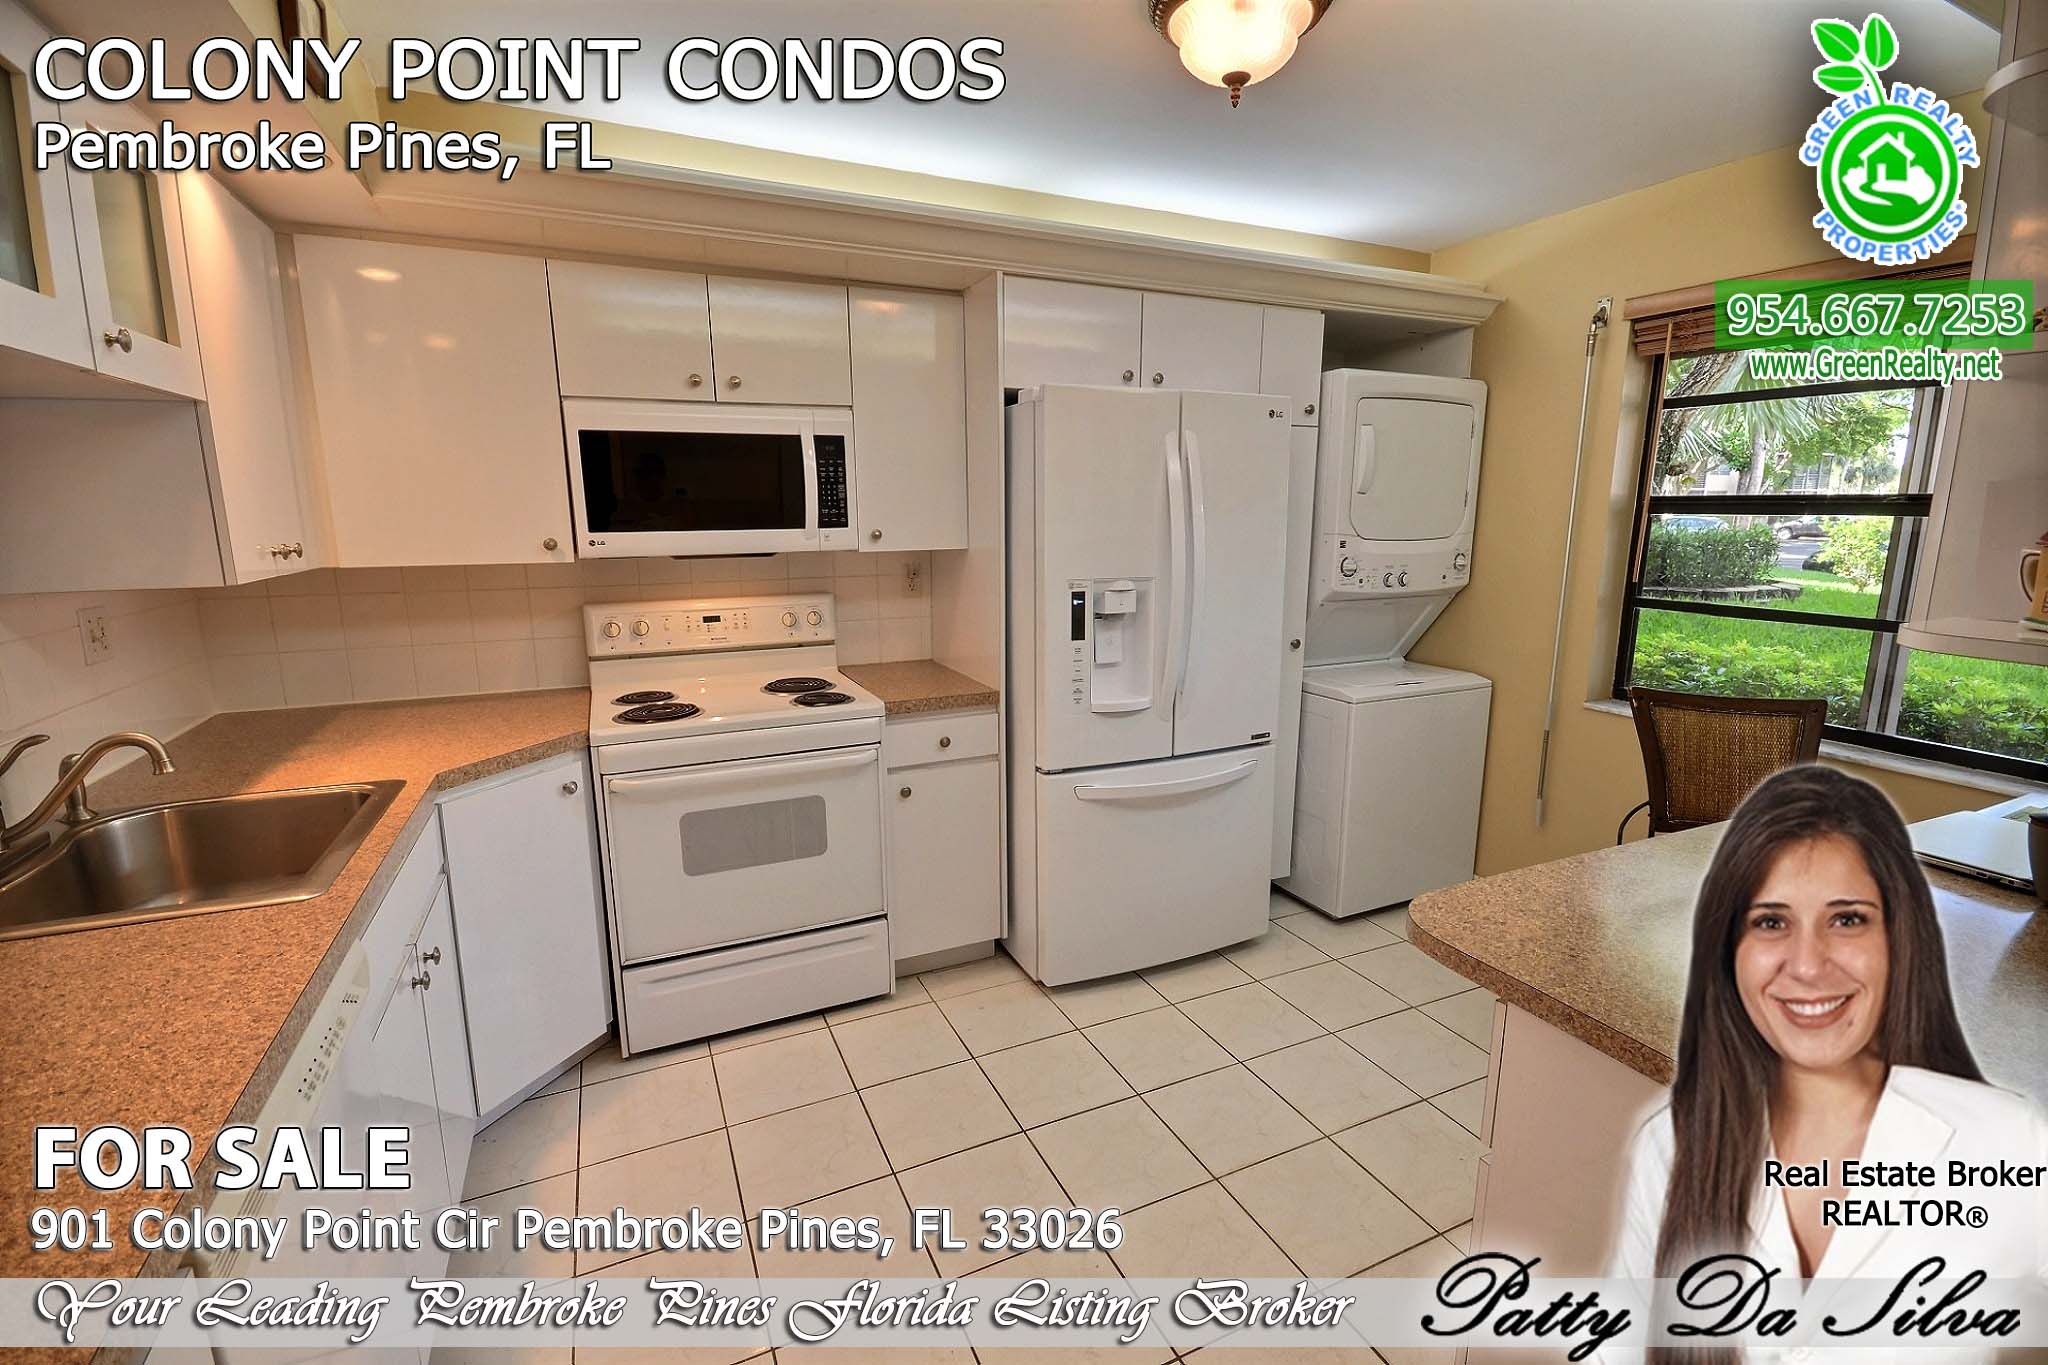 901 Colony Point Cir, Unit 112 - Pembroke Pines Homes For Sale (3)